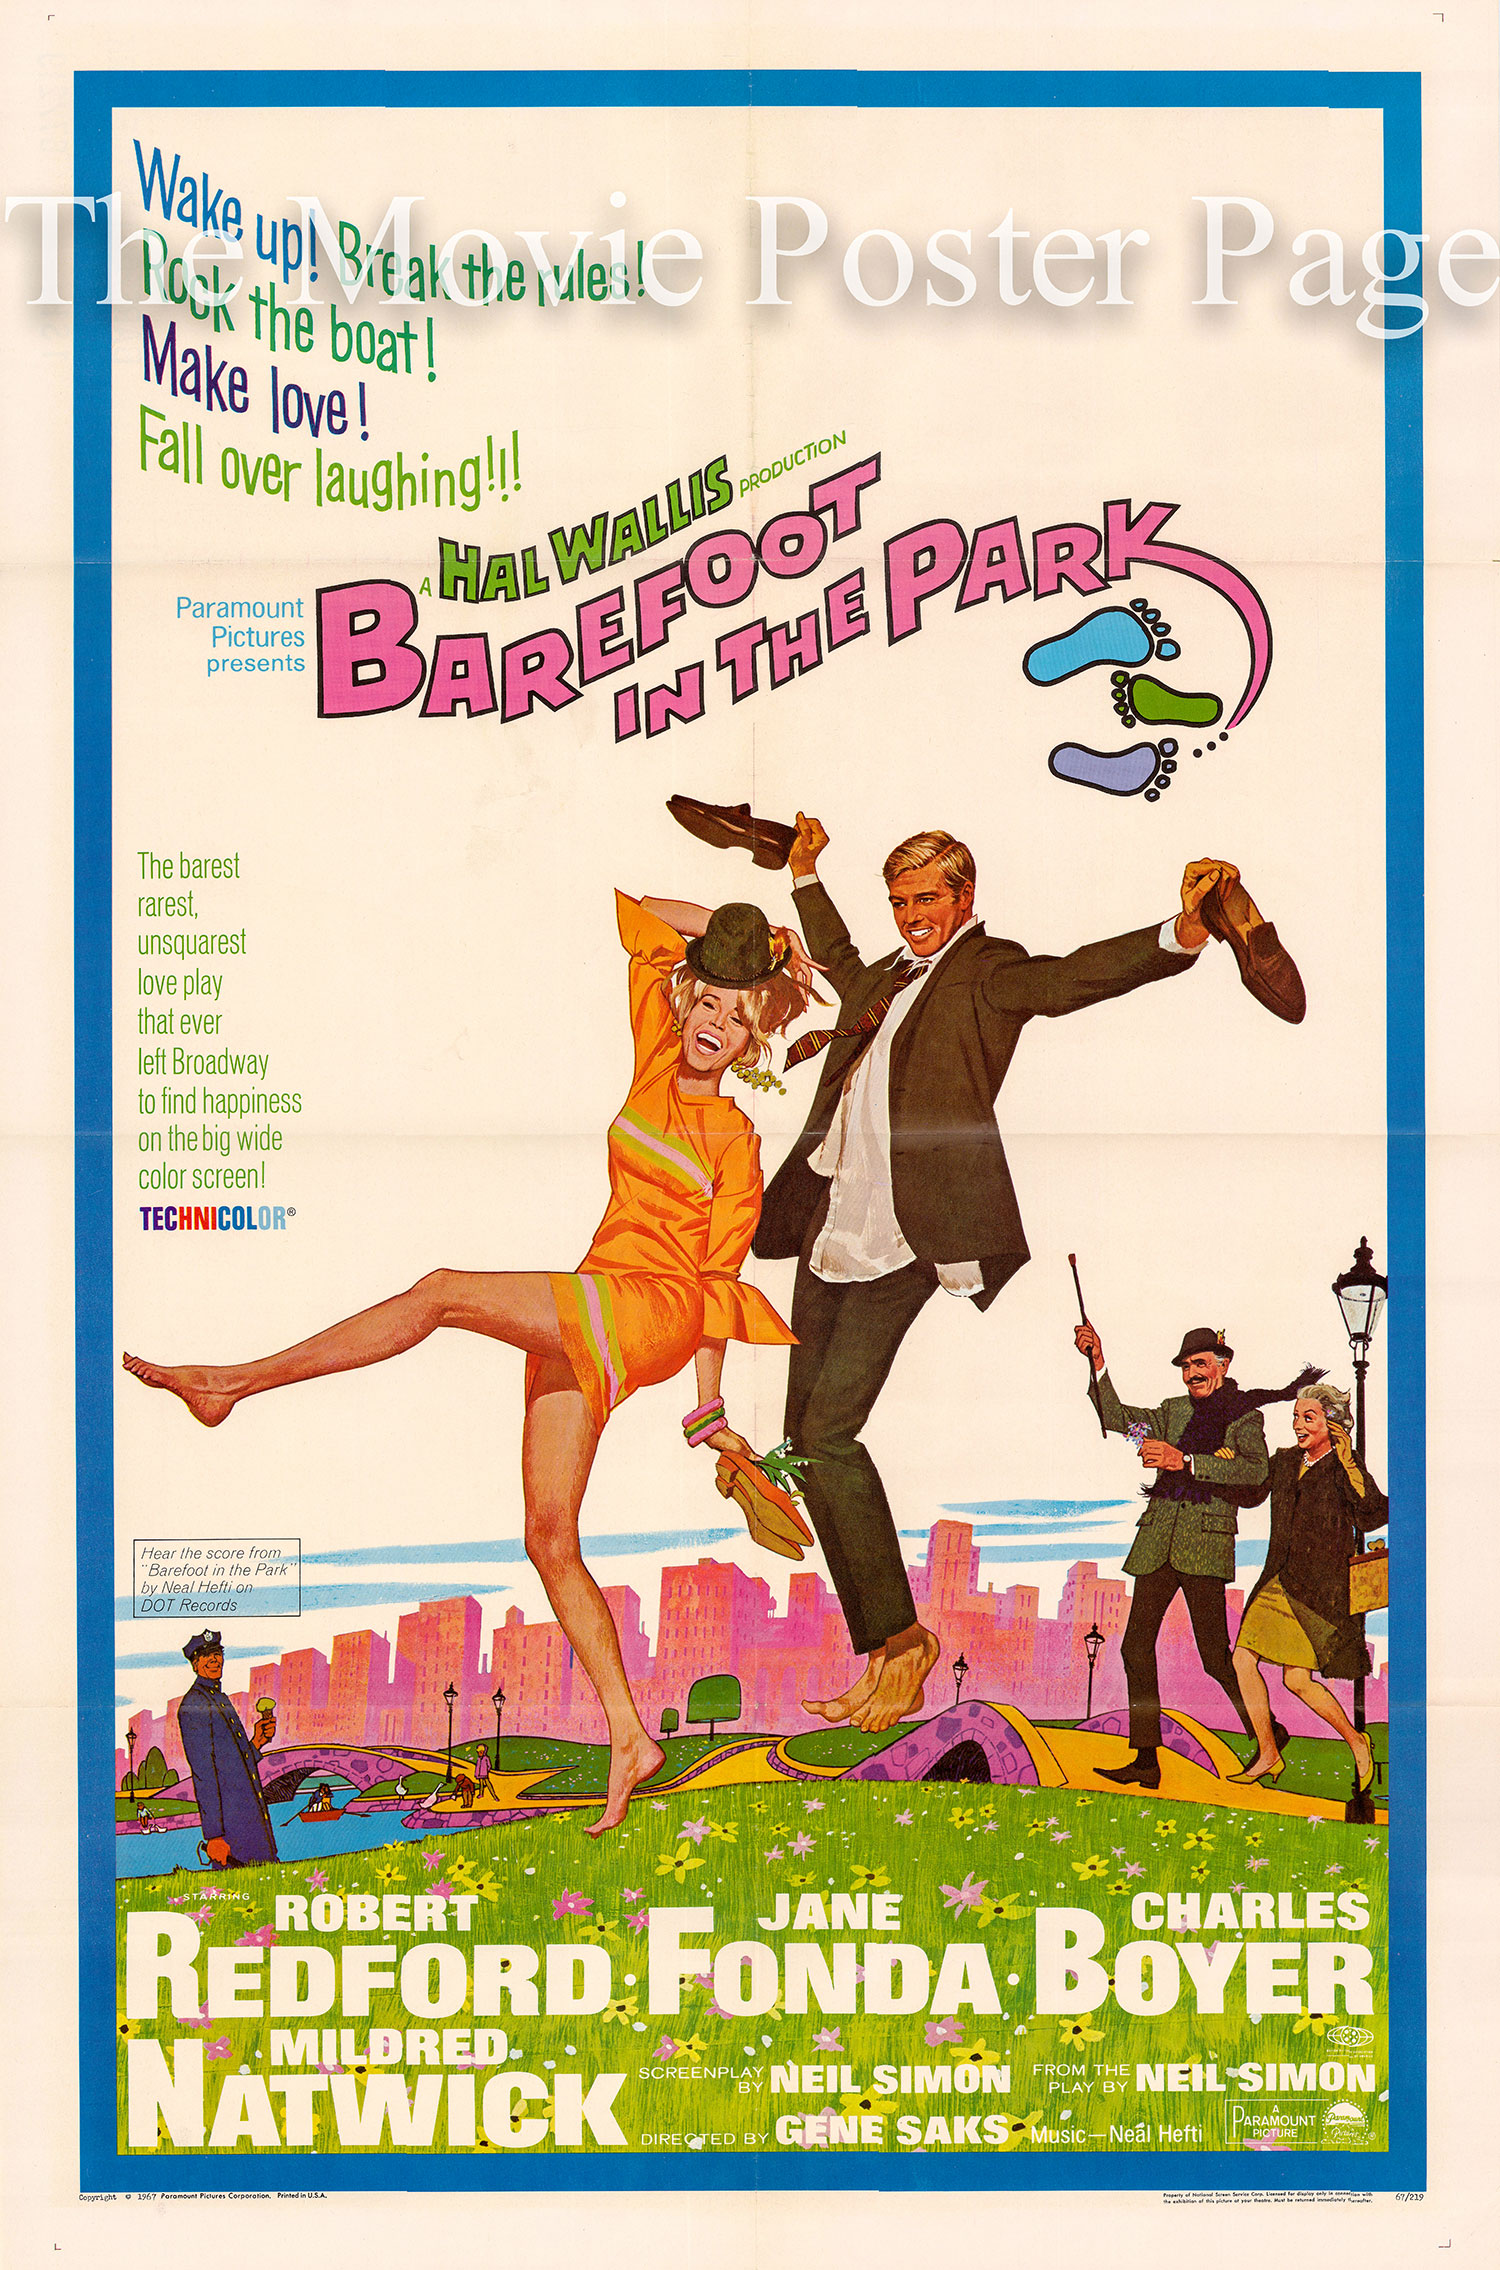 Pictured is a US promotional poster for the 1967 Gene Saks film Barefoot in the Park starring Jane Fonda and Robert Redford.